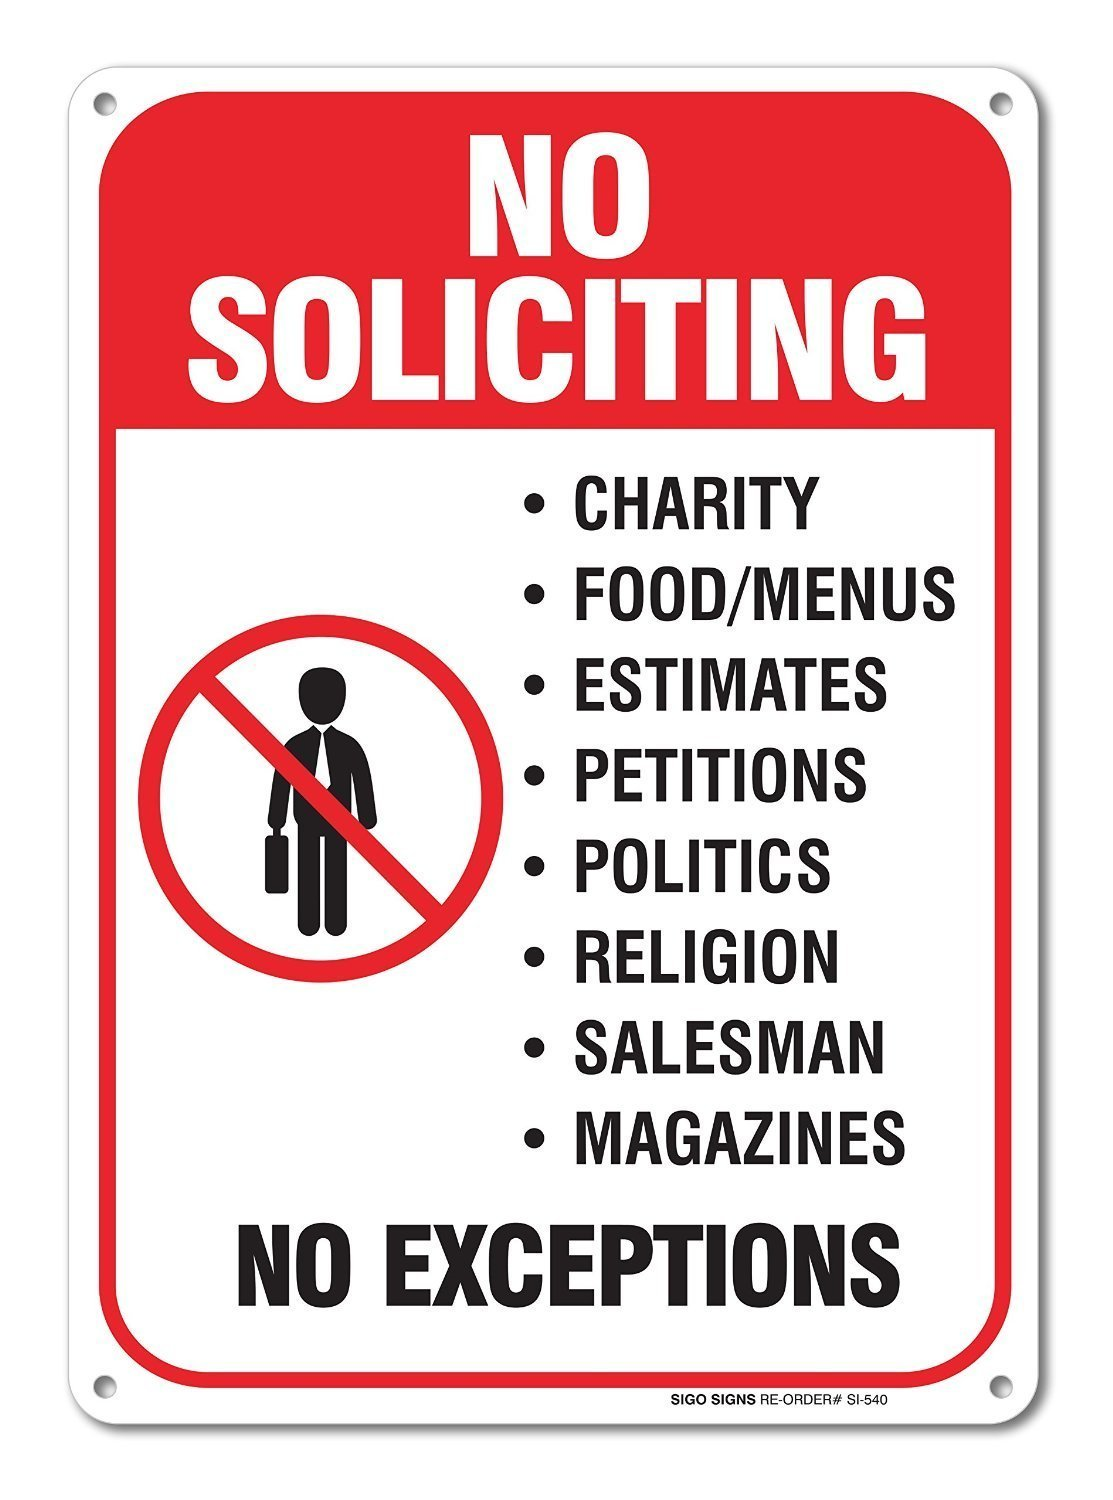 No Soliciting Sign Legend' 10 X 7 Rust Free .40 Aluminum Sign USA Made Of Rust Free Aluminum-UV Printed With Professional Graphics-Easy To Mount Indoors & Outdoors SIGO SIGNS SI-540